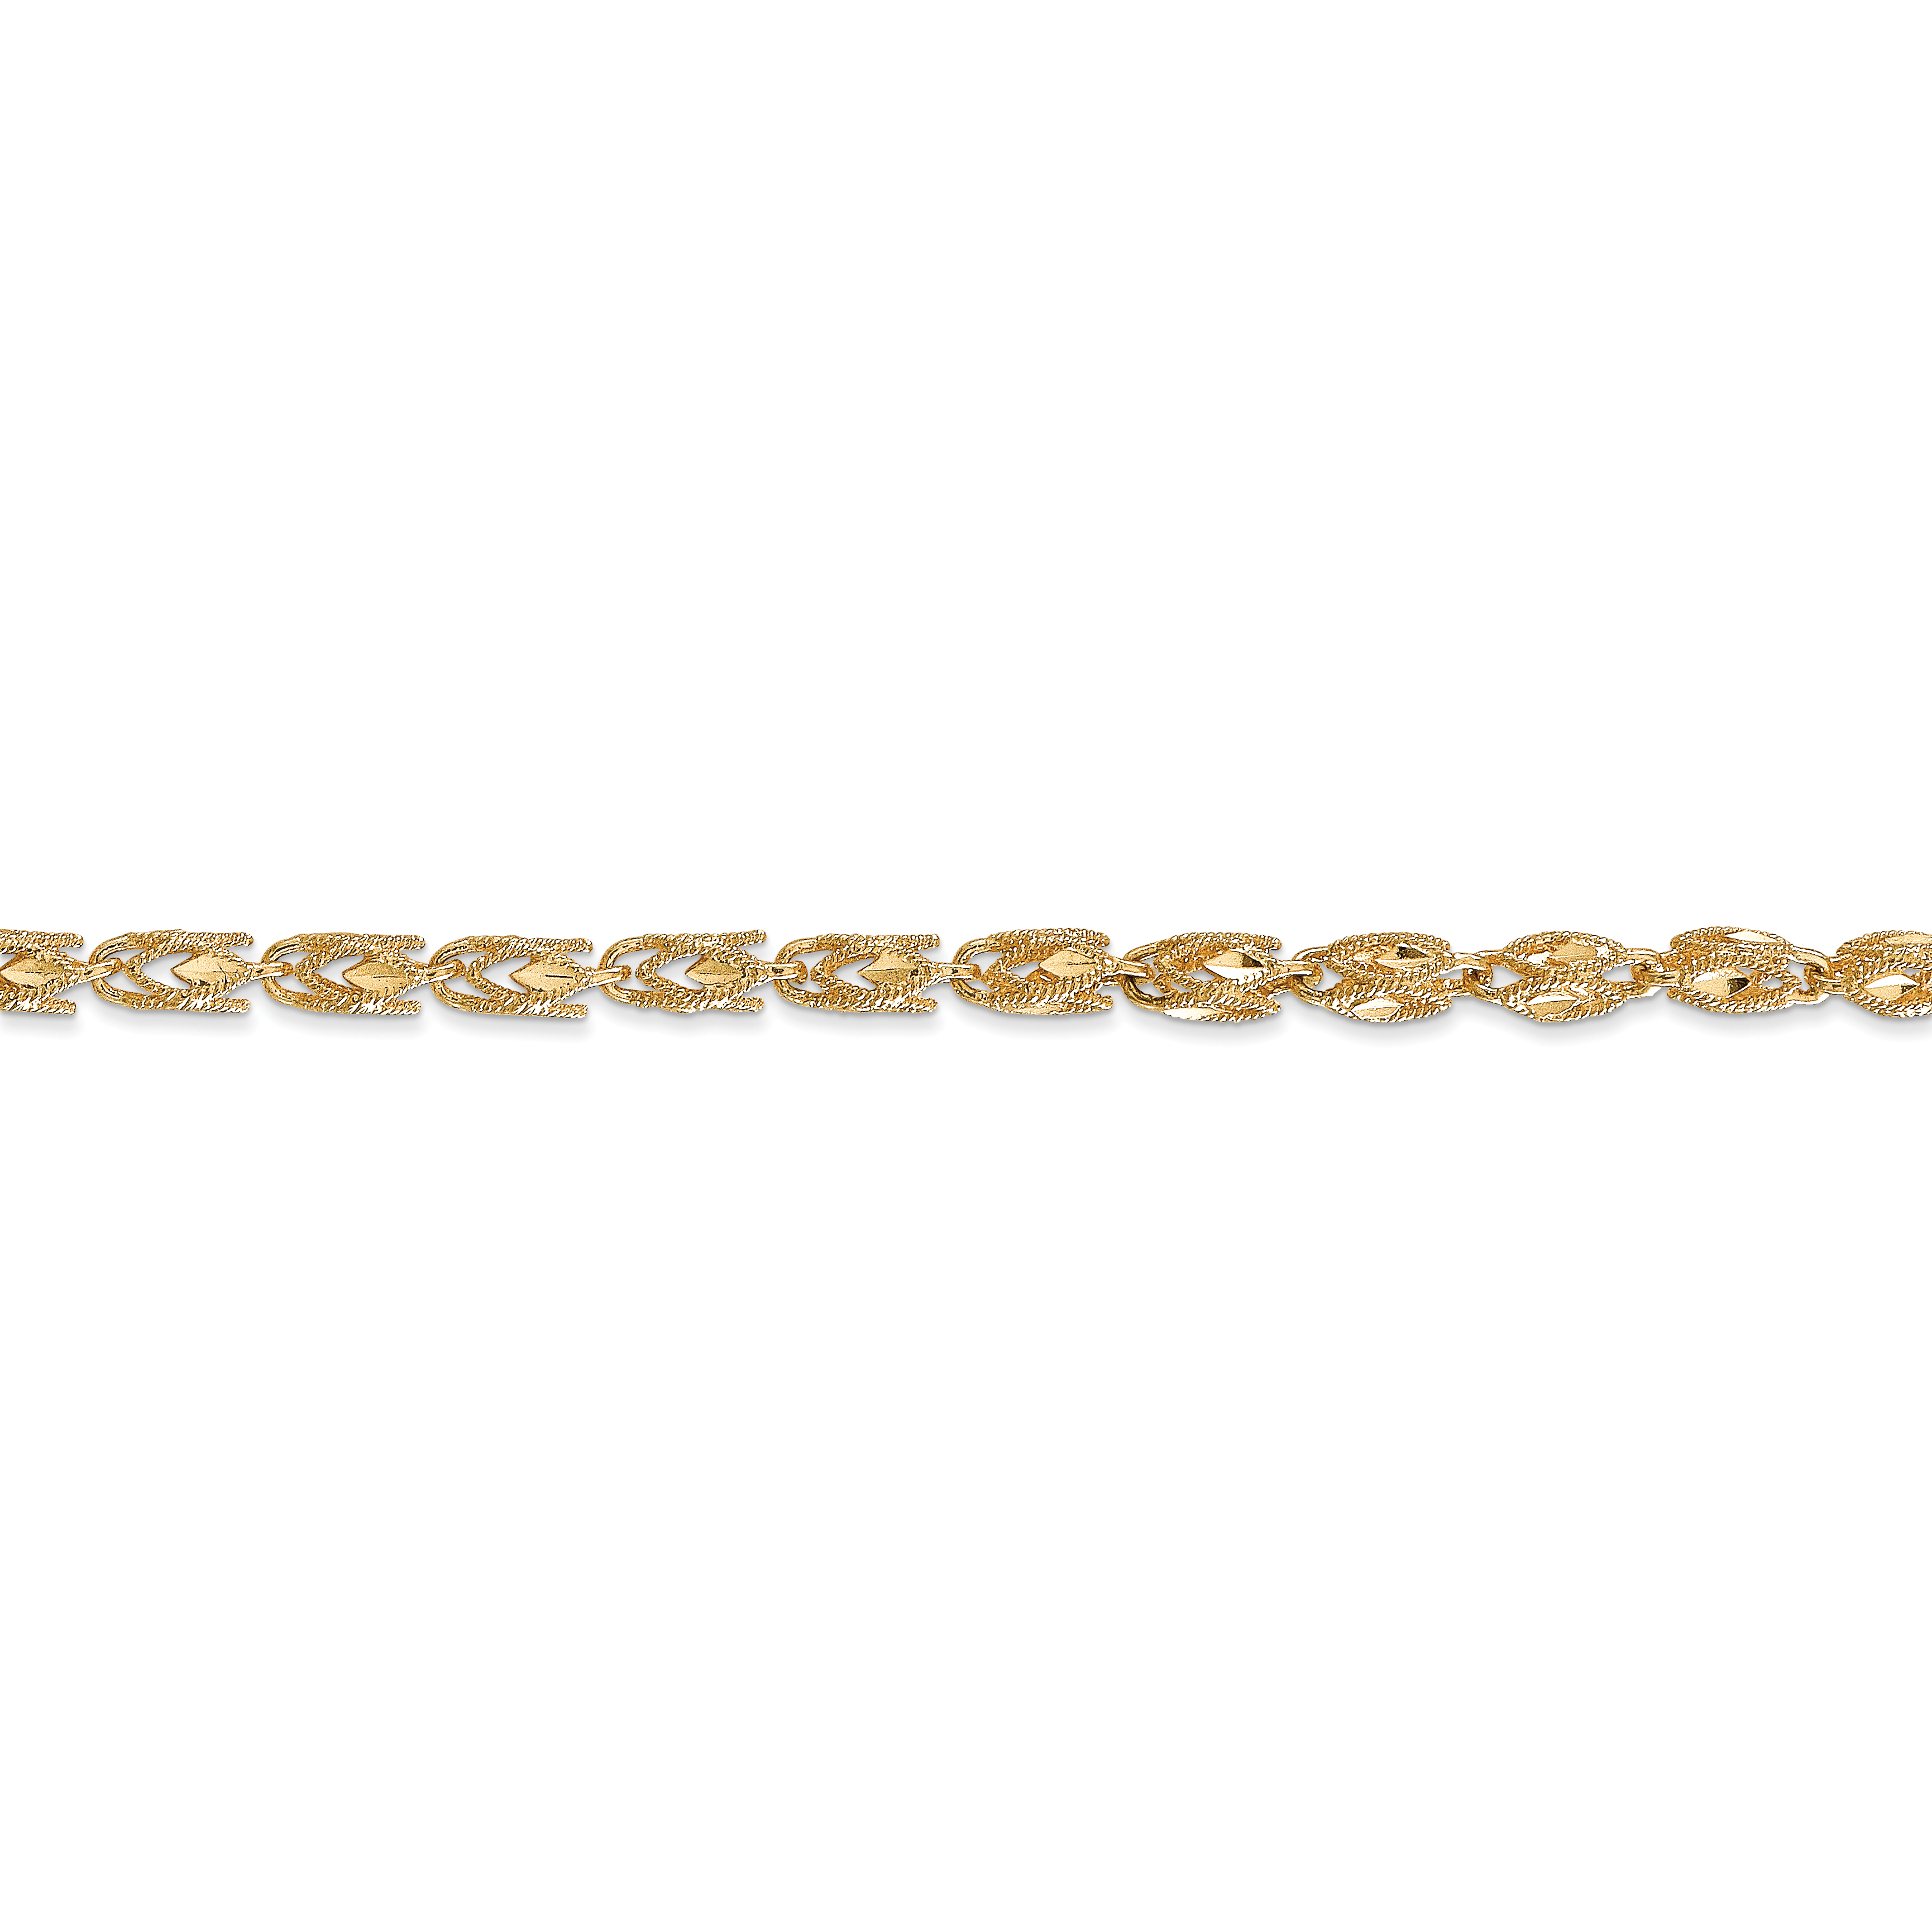 14K Yellow Gold 3.5mm Marquise Chain - image 3 of 4